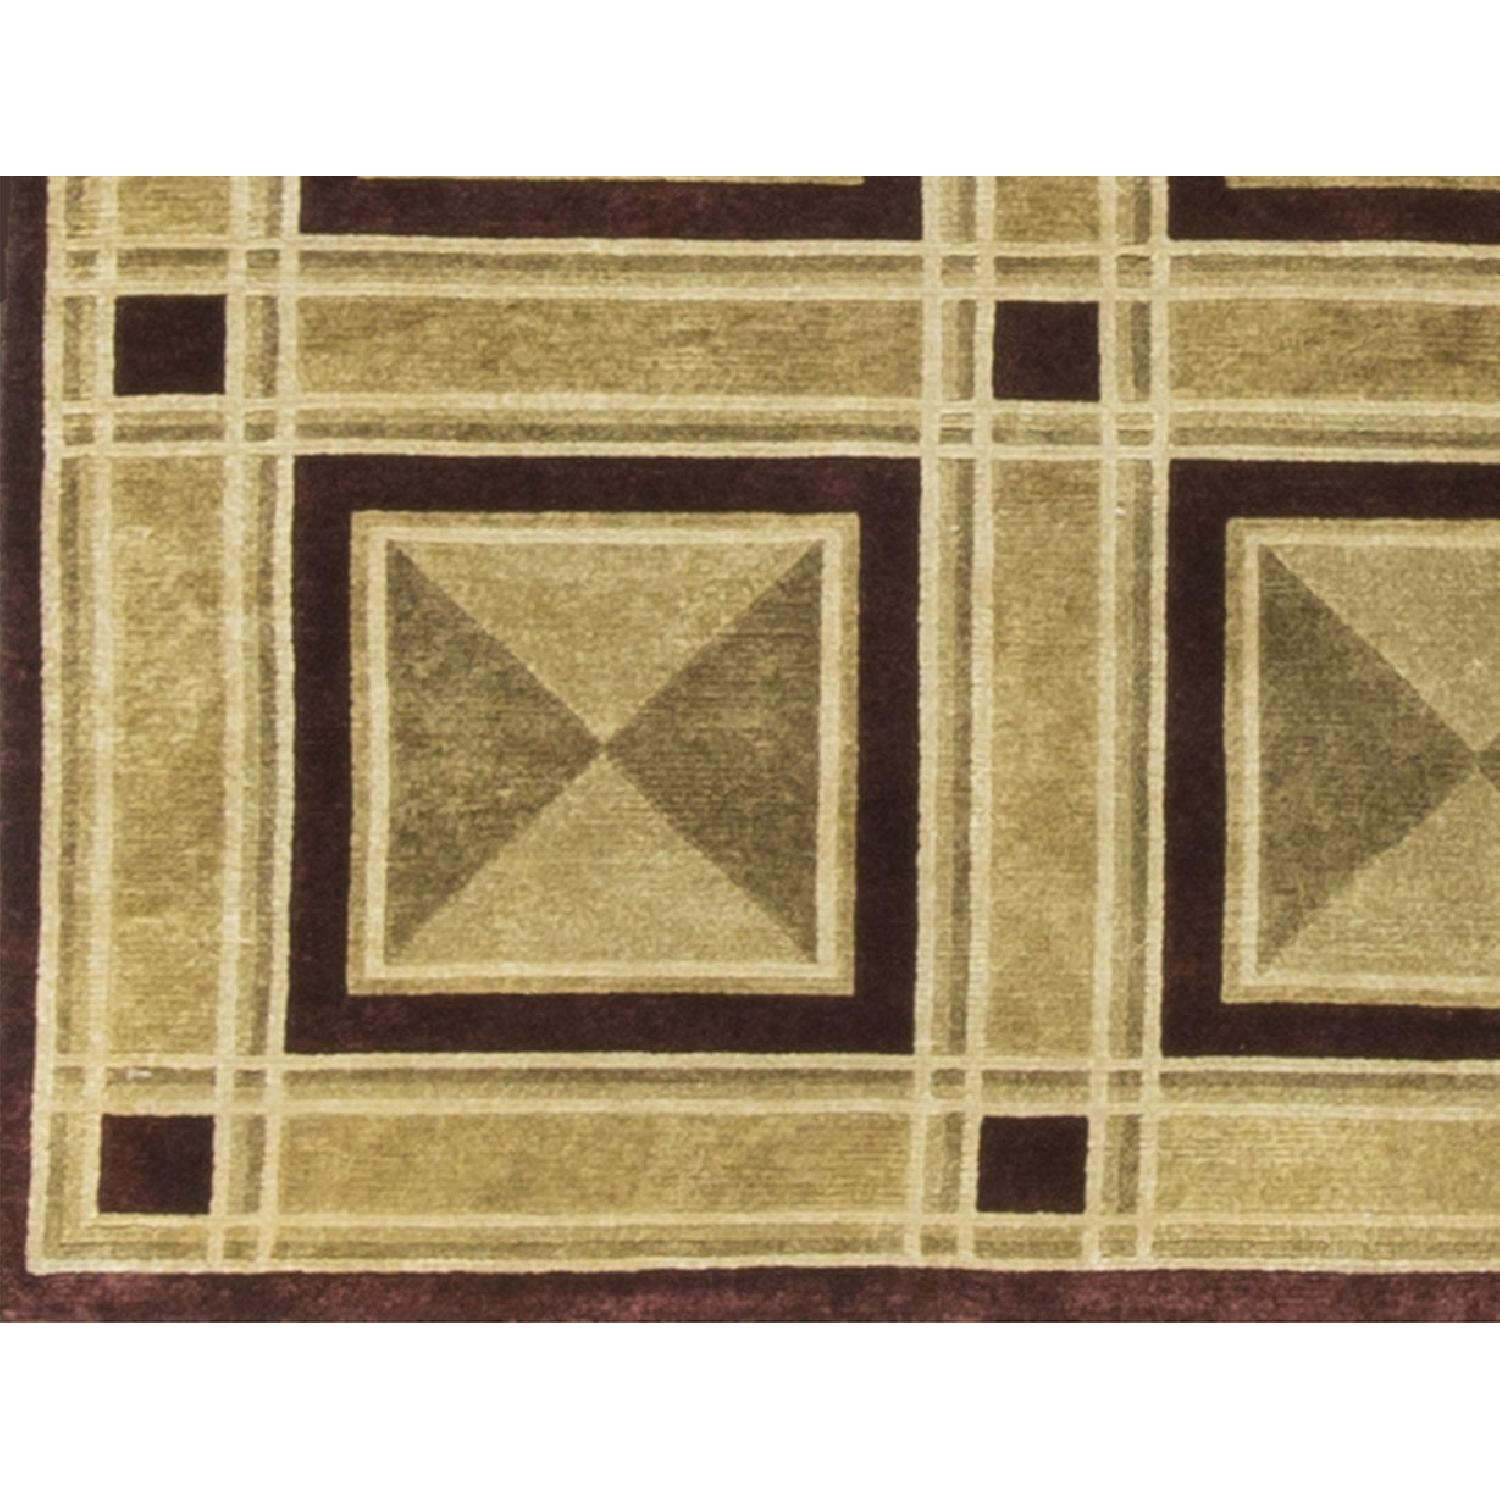 Modern Contemporary Hand Knotted Wool Rug in Black/Beige - image-3